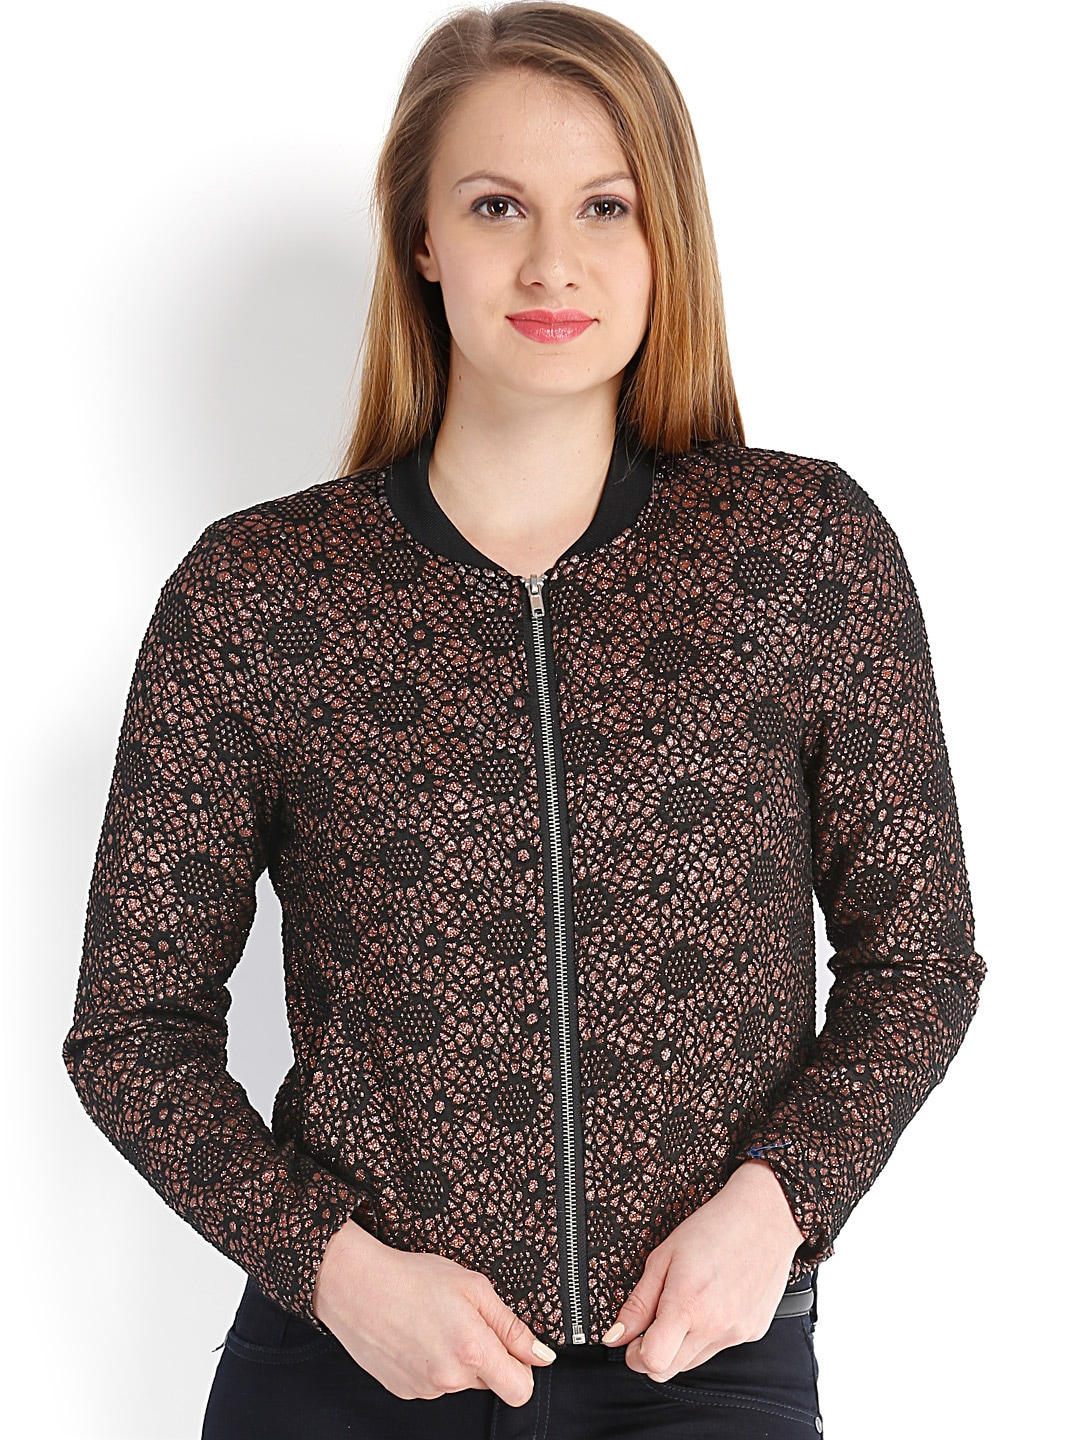 Vero Moda Women Black & Metallic Brown Bomber Jacket